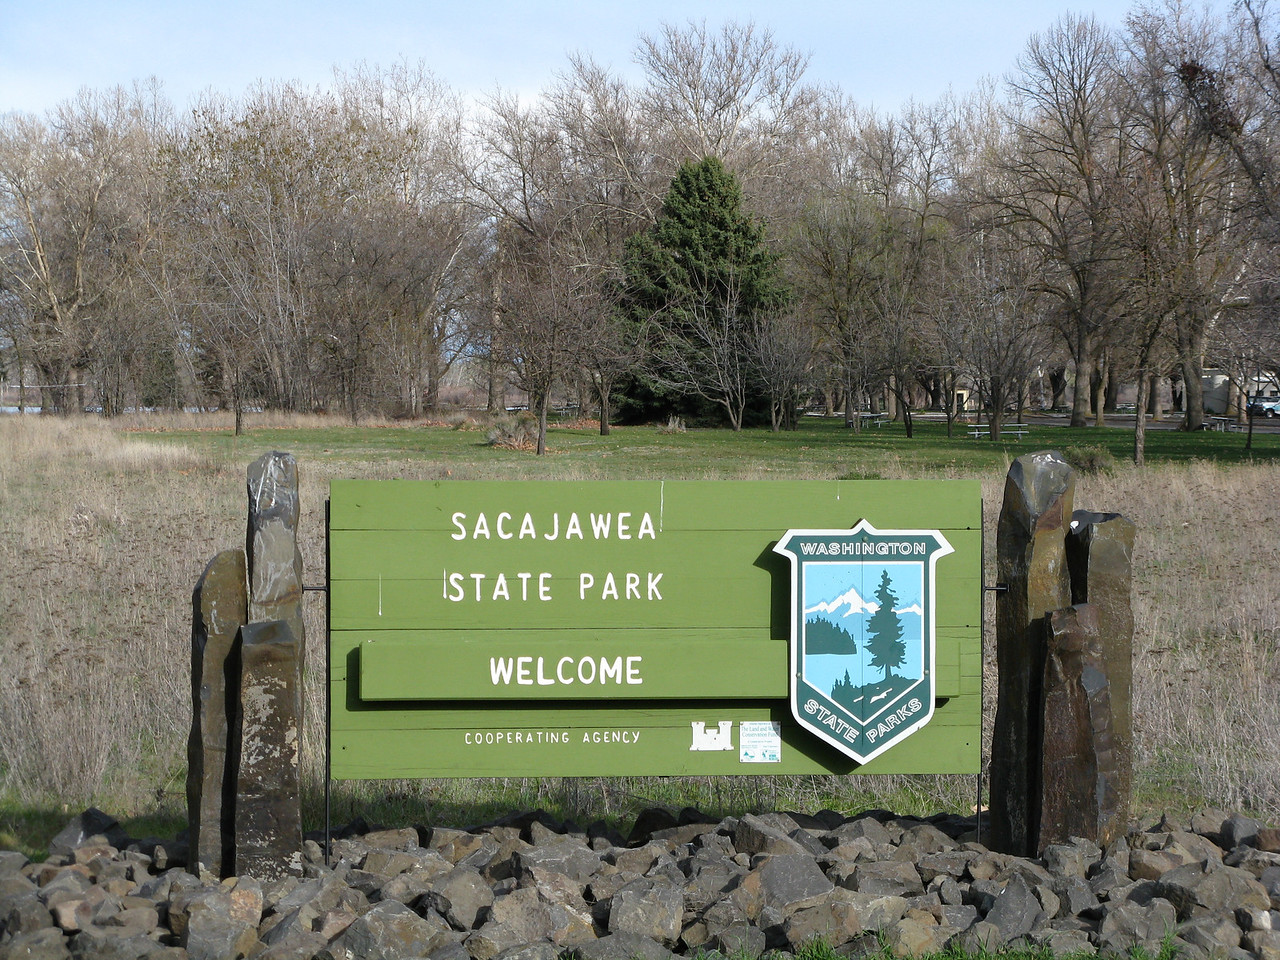 We drove to Sacajawea State Park after our volkswalk.